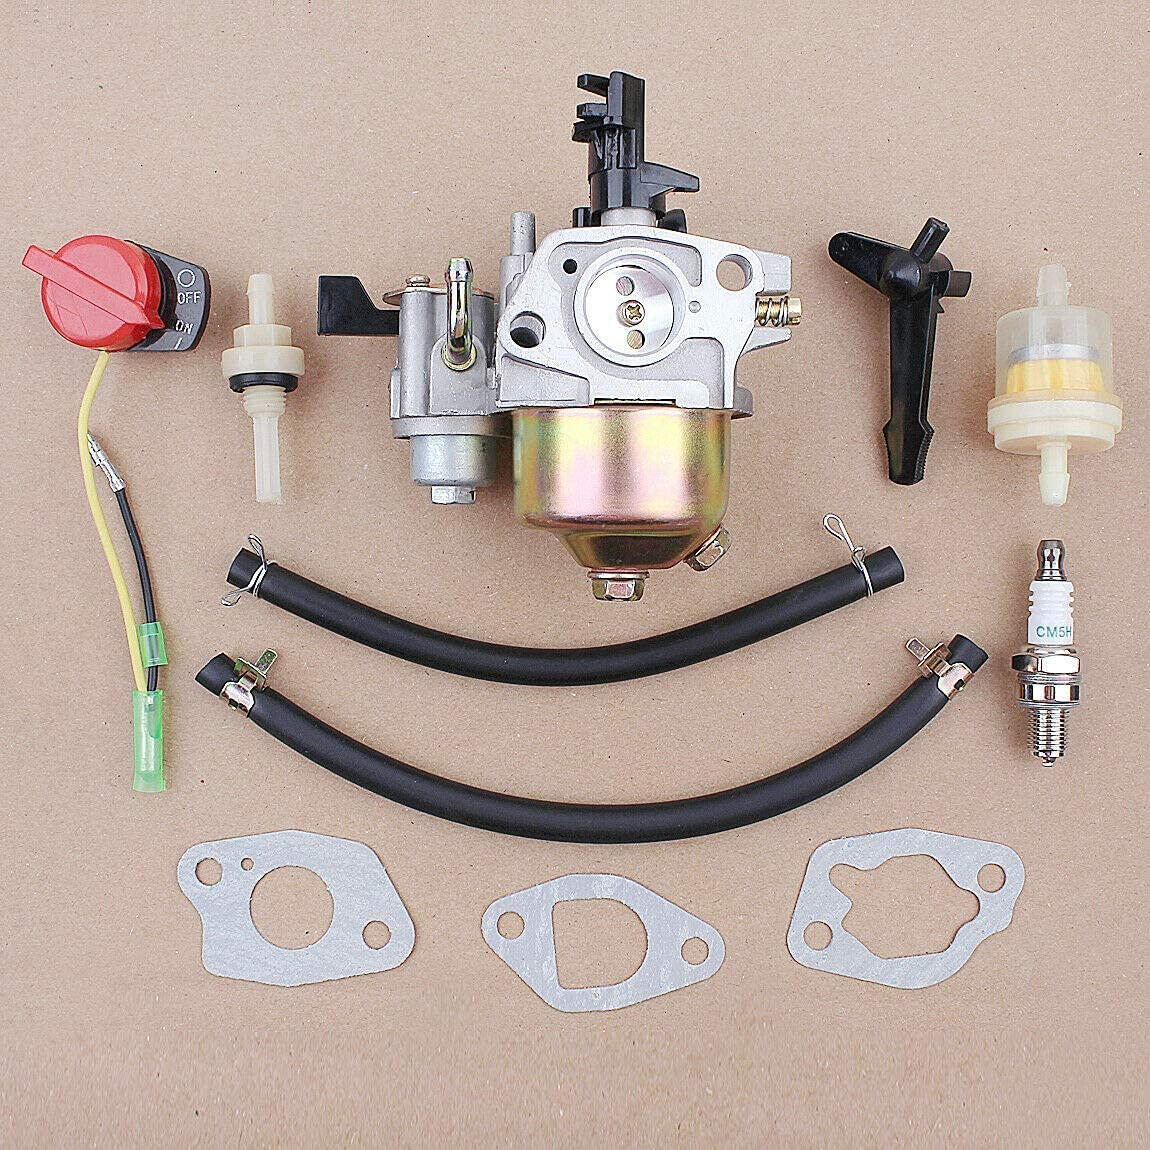 hndfhblshr Max 74% Popular brand in the world OFF Power Tool Parts Advanced Carburetor Accessories Cra